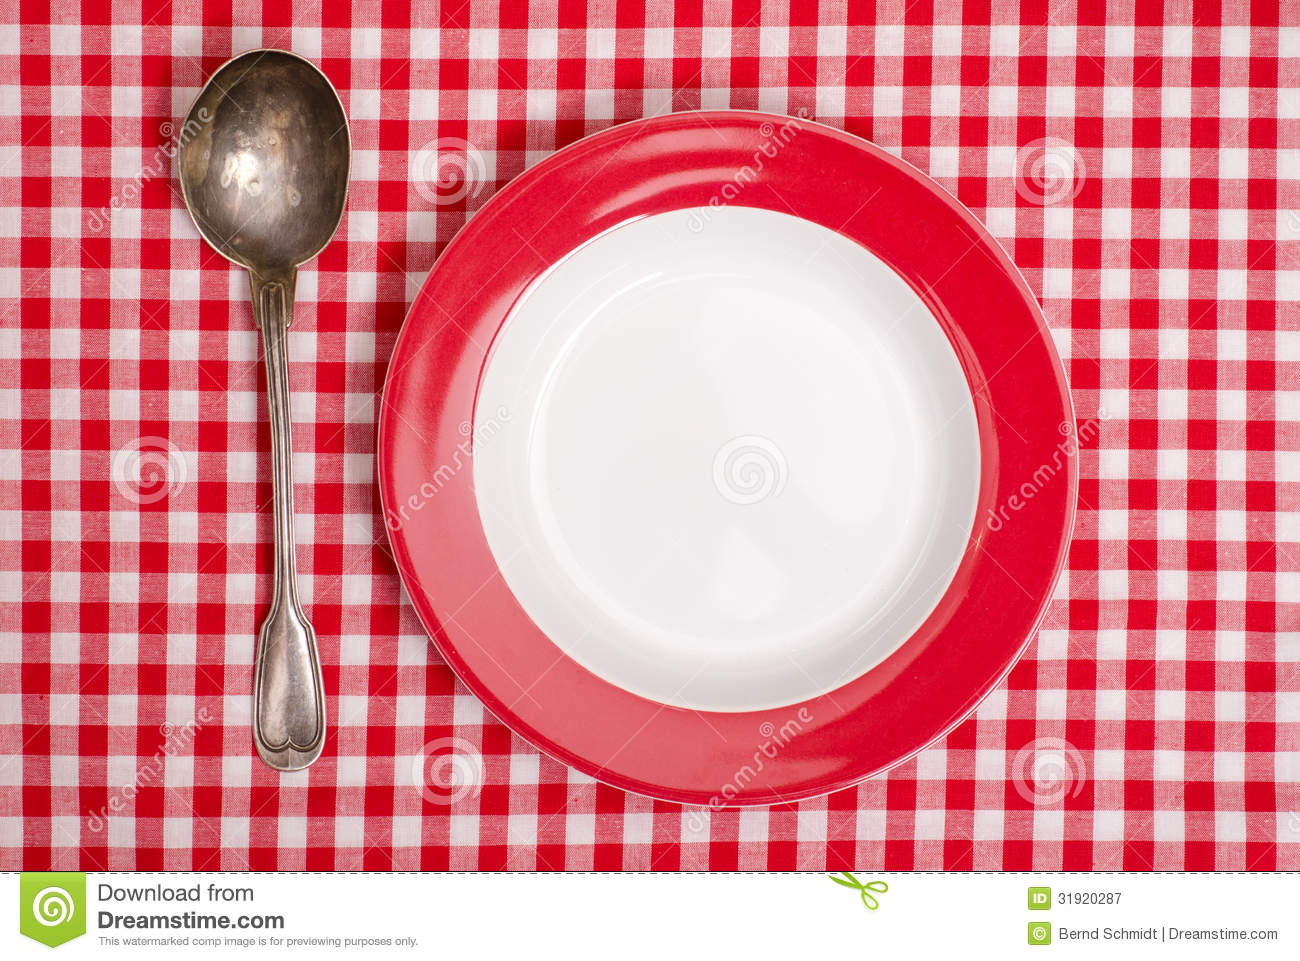 Astonishing Red Checked Table Cloth With Plate And Spoon Stock Image Download Free Architecture Designs Grimeyleaguecom